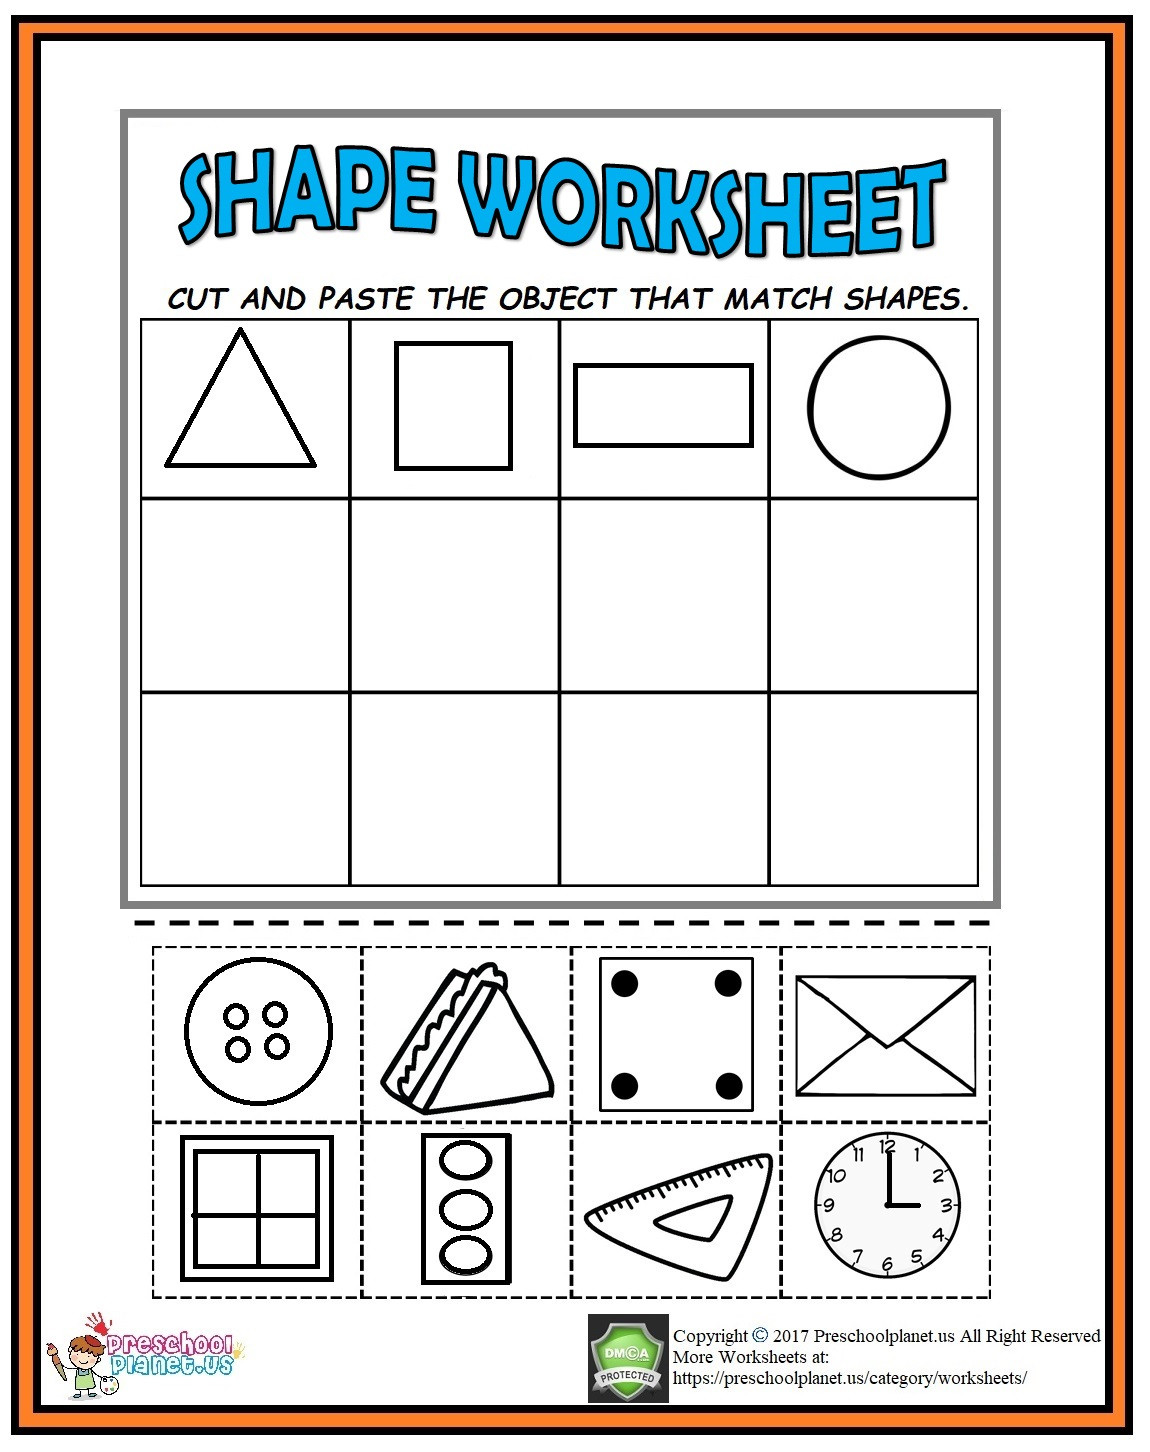 Printable Cut and Paste Worksheets Cut and Paste Shape Worksheet Preschoolplanet Cutting Shapes